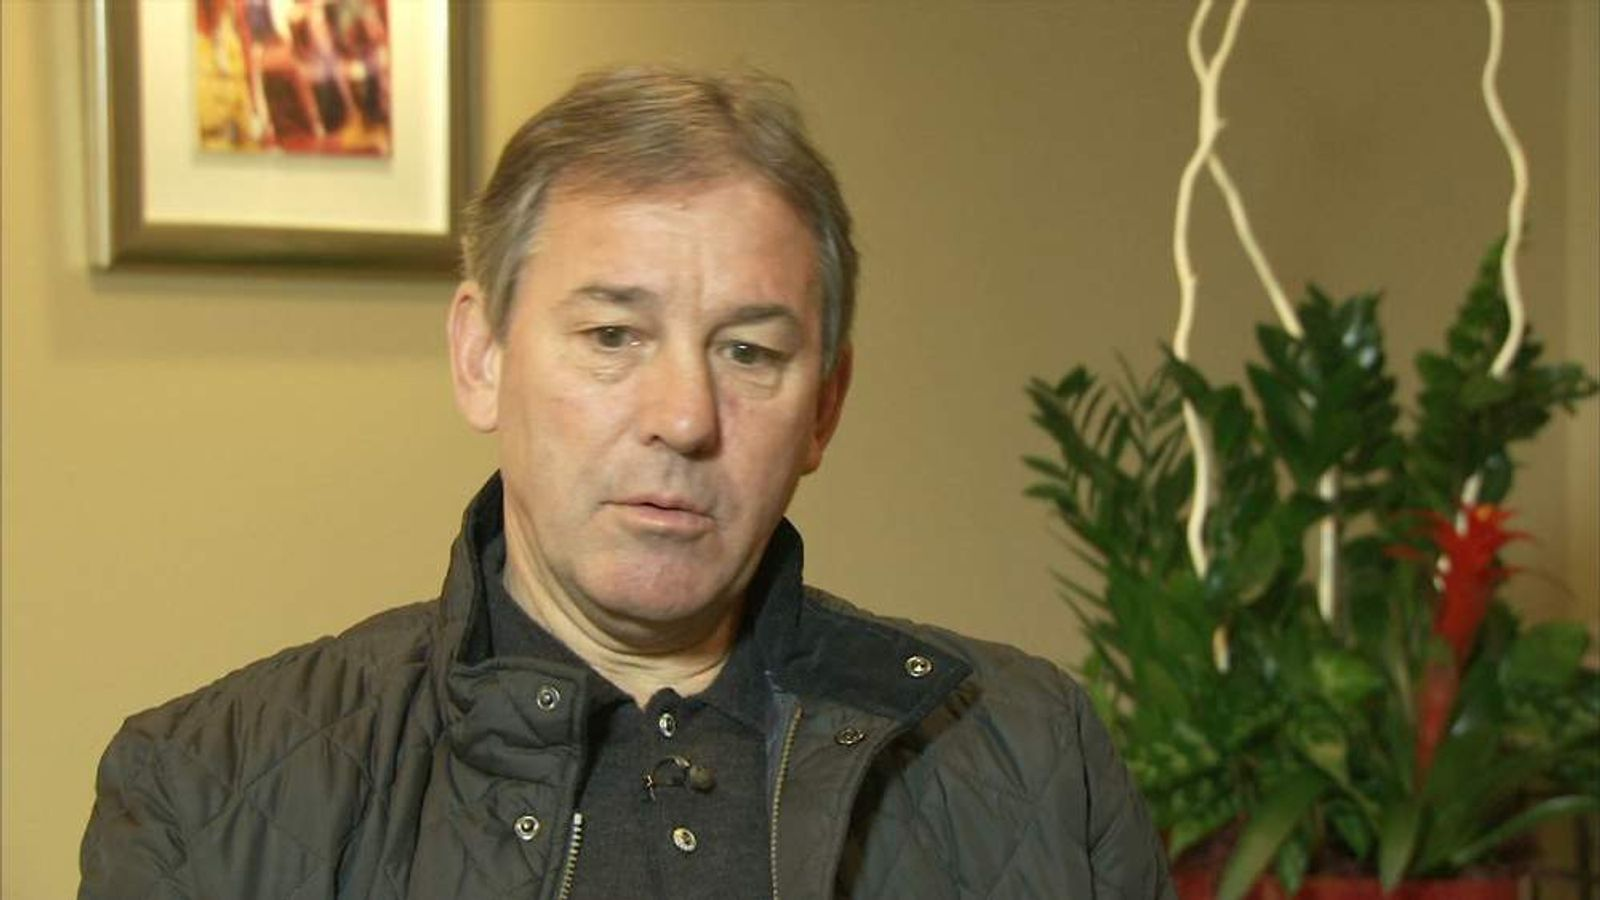 Bryan Robson Former Manchester United Captain